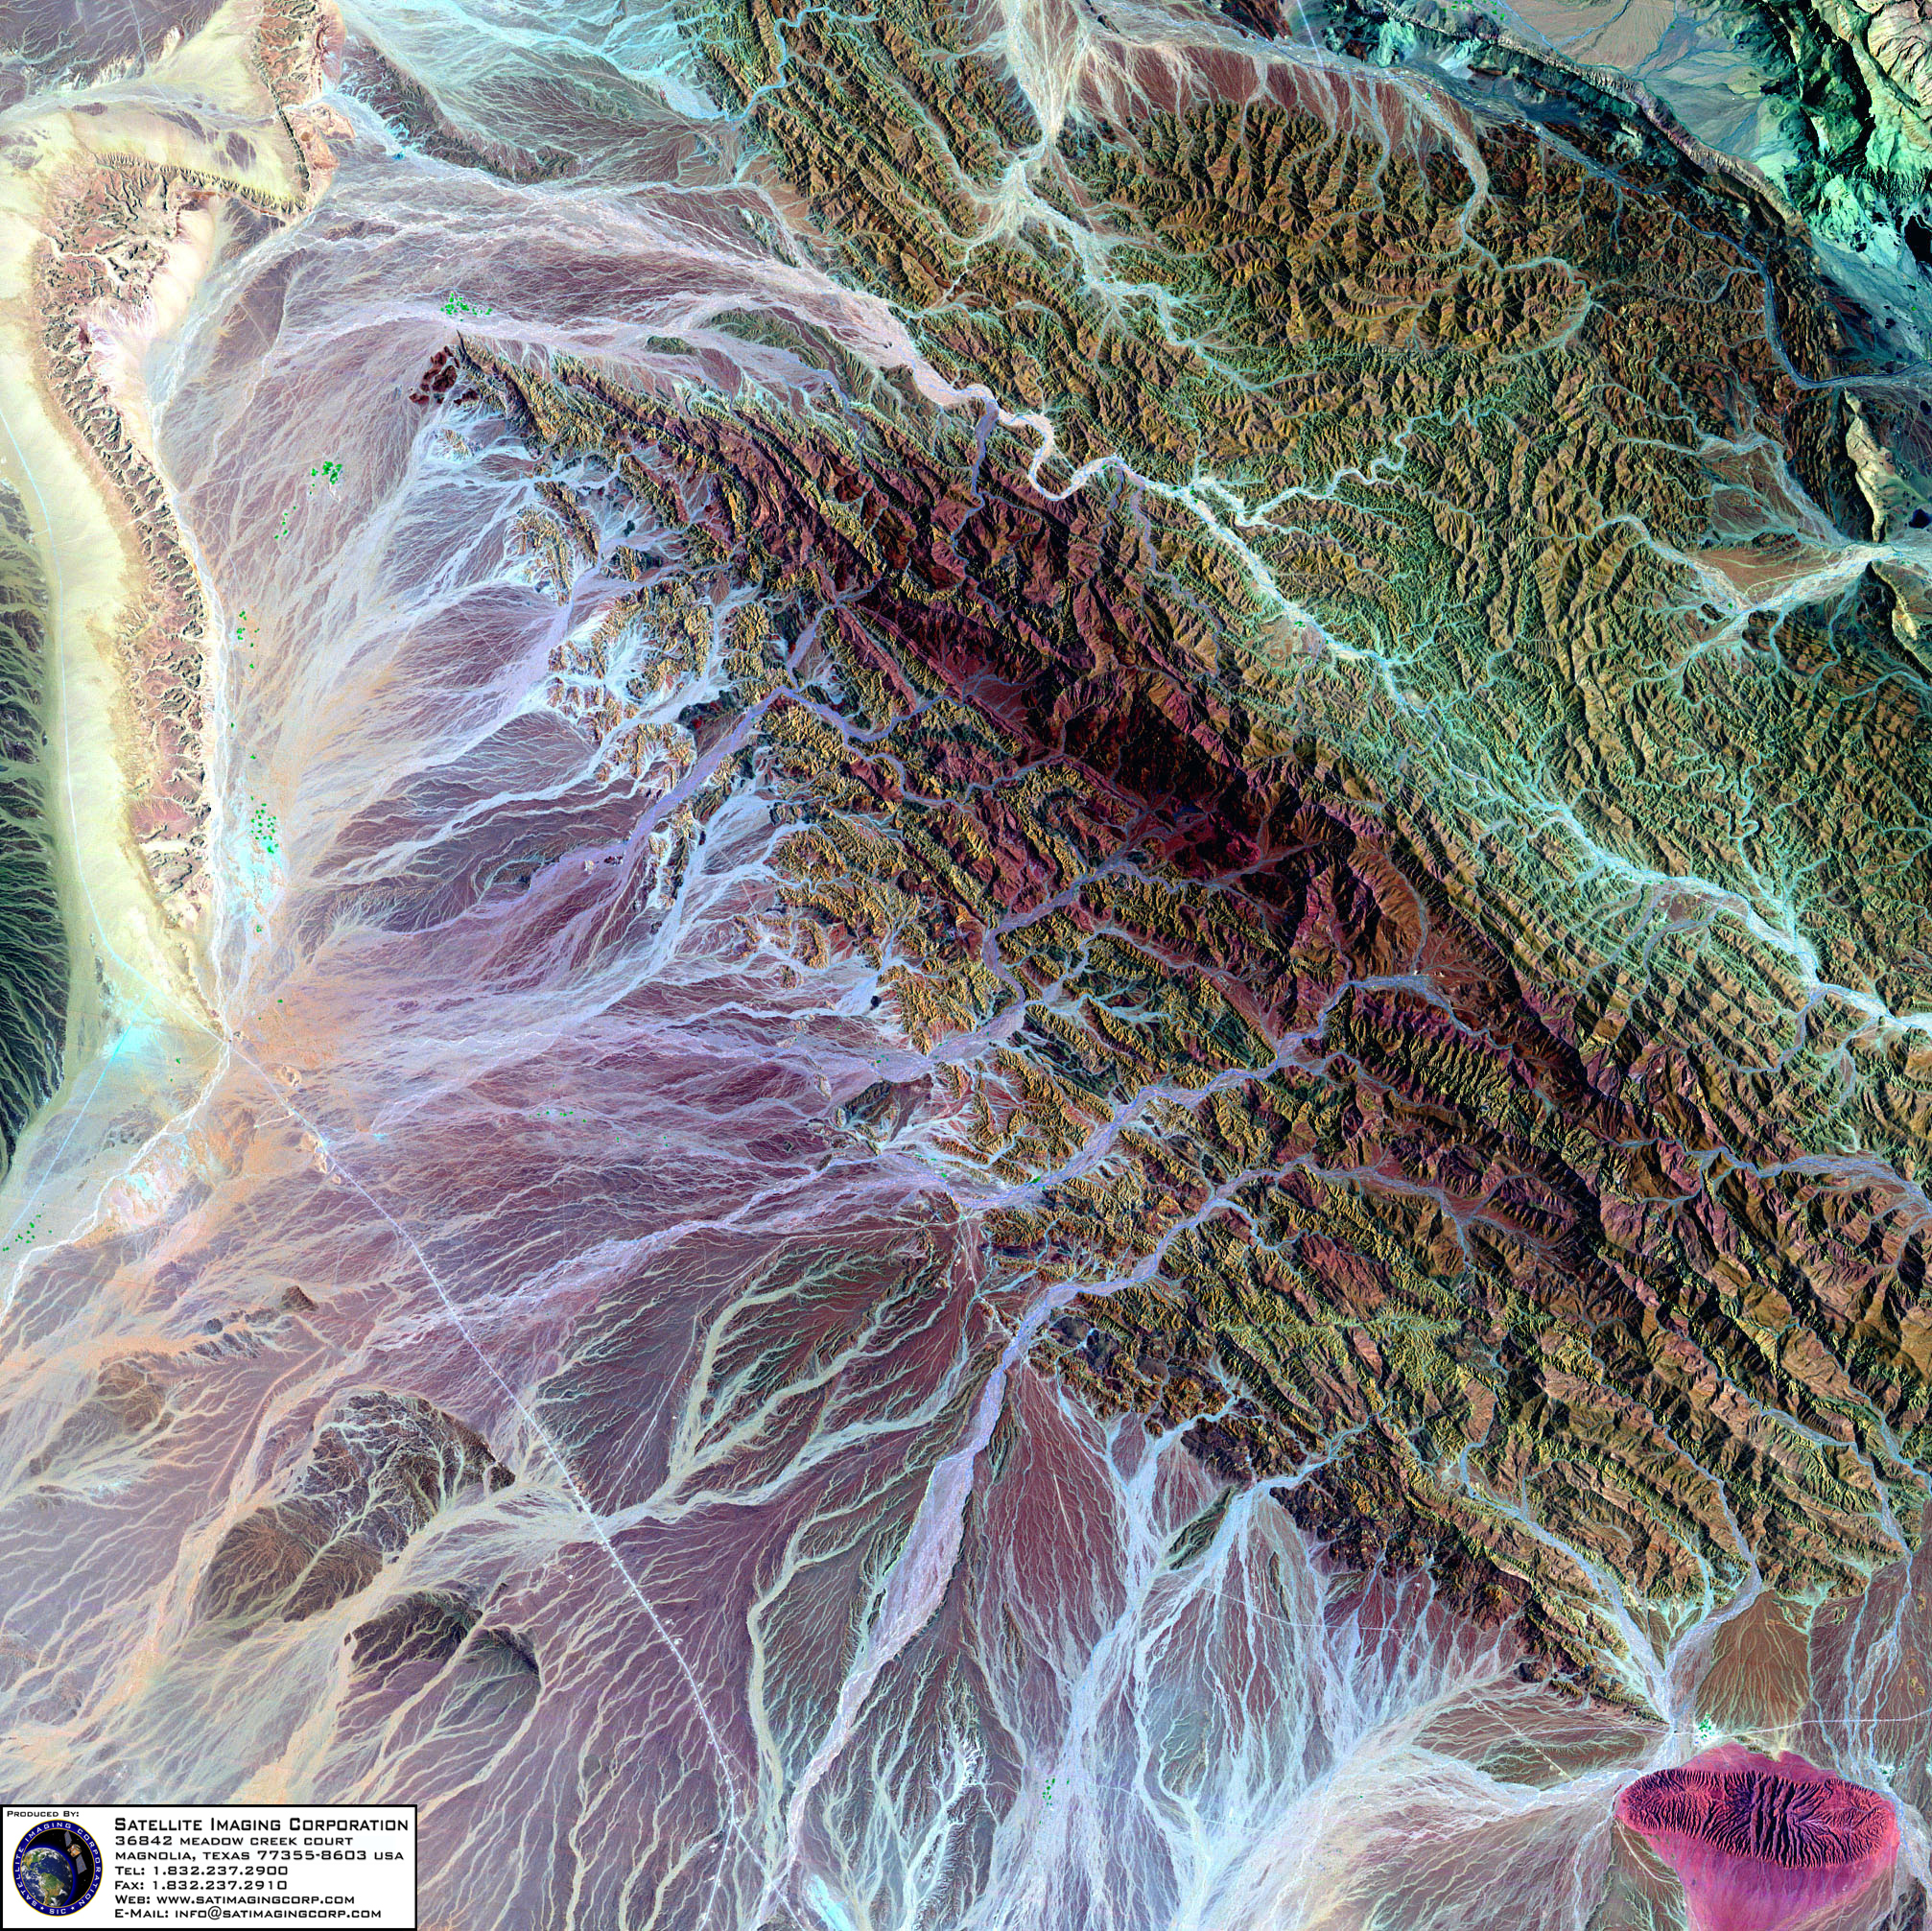 Application of Remote Sensing and GIS for Environmental